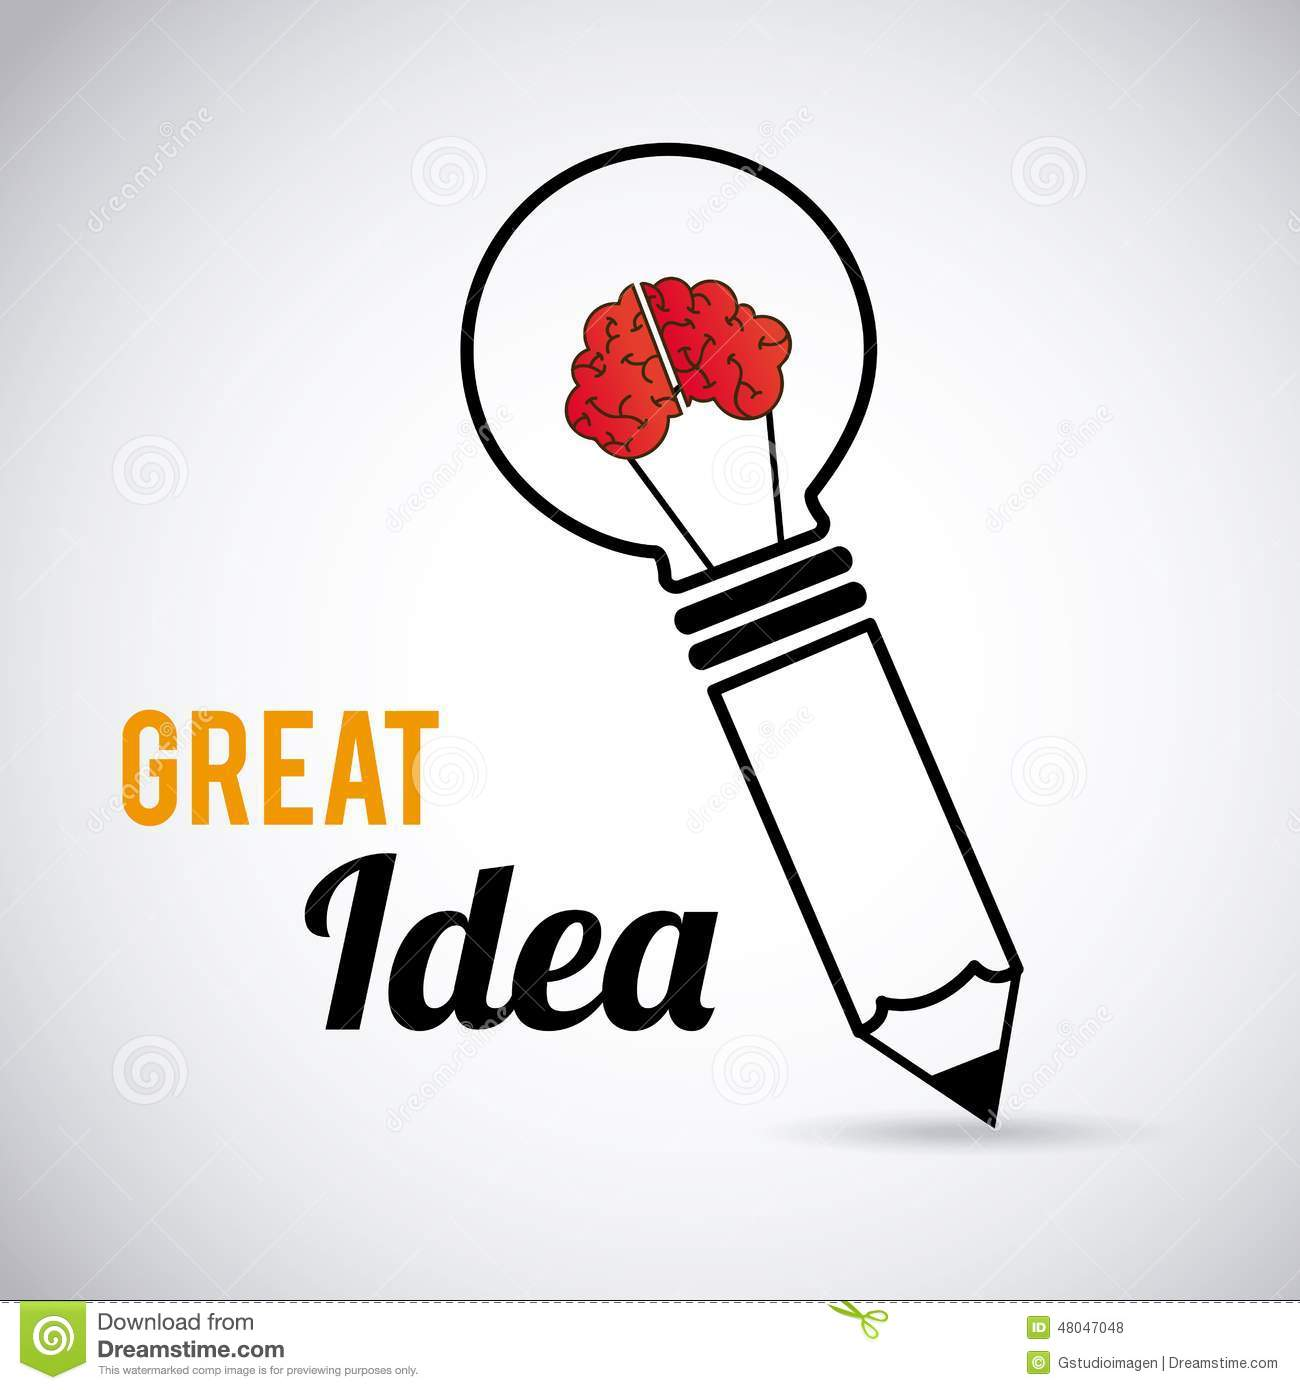 great idea design stock illustration image 48047048